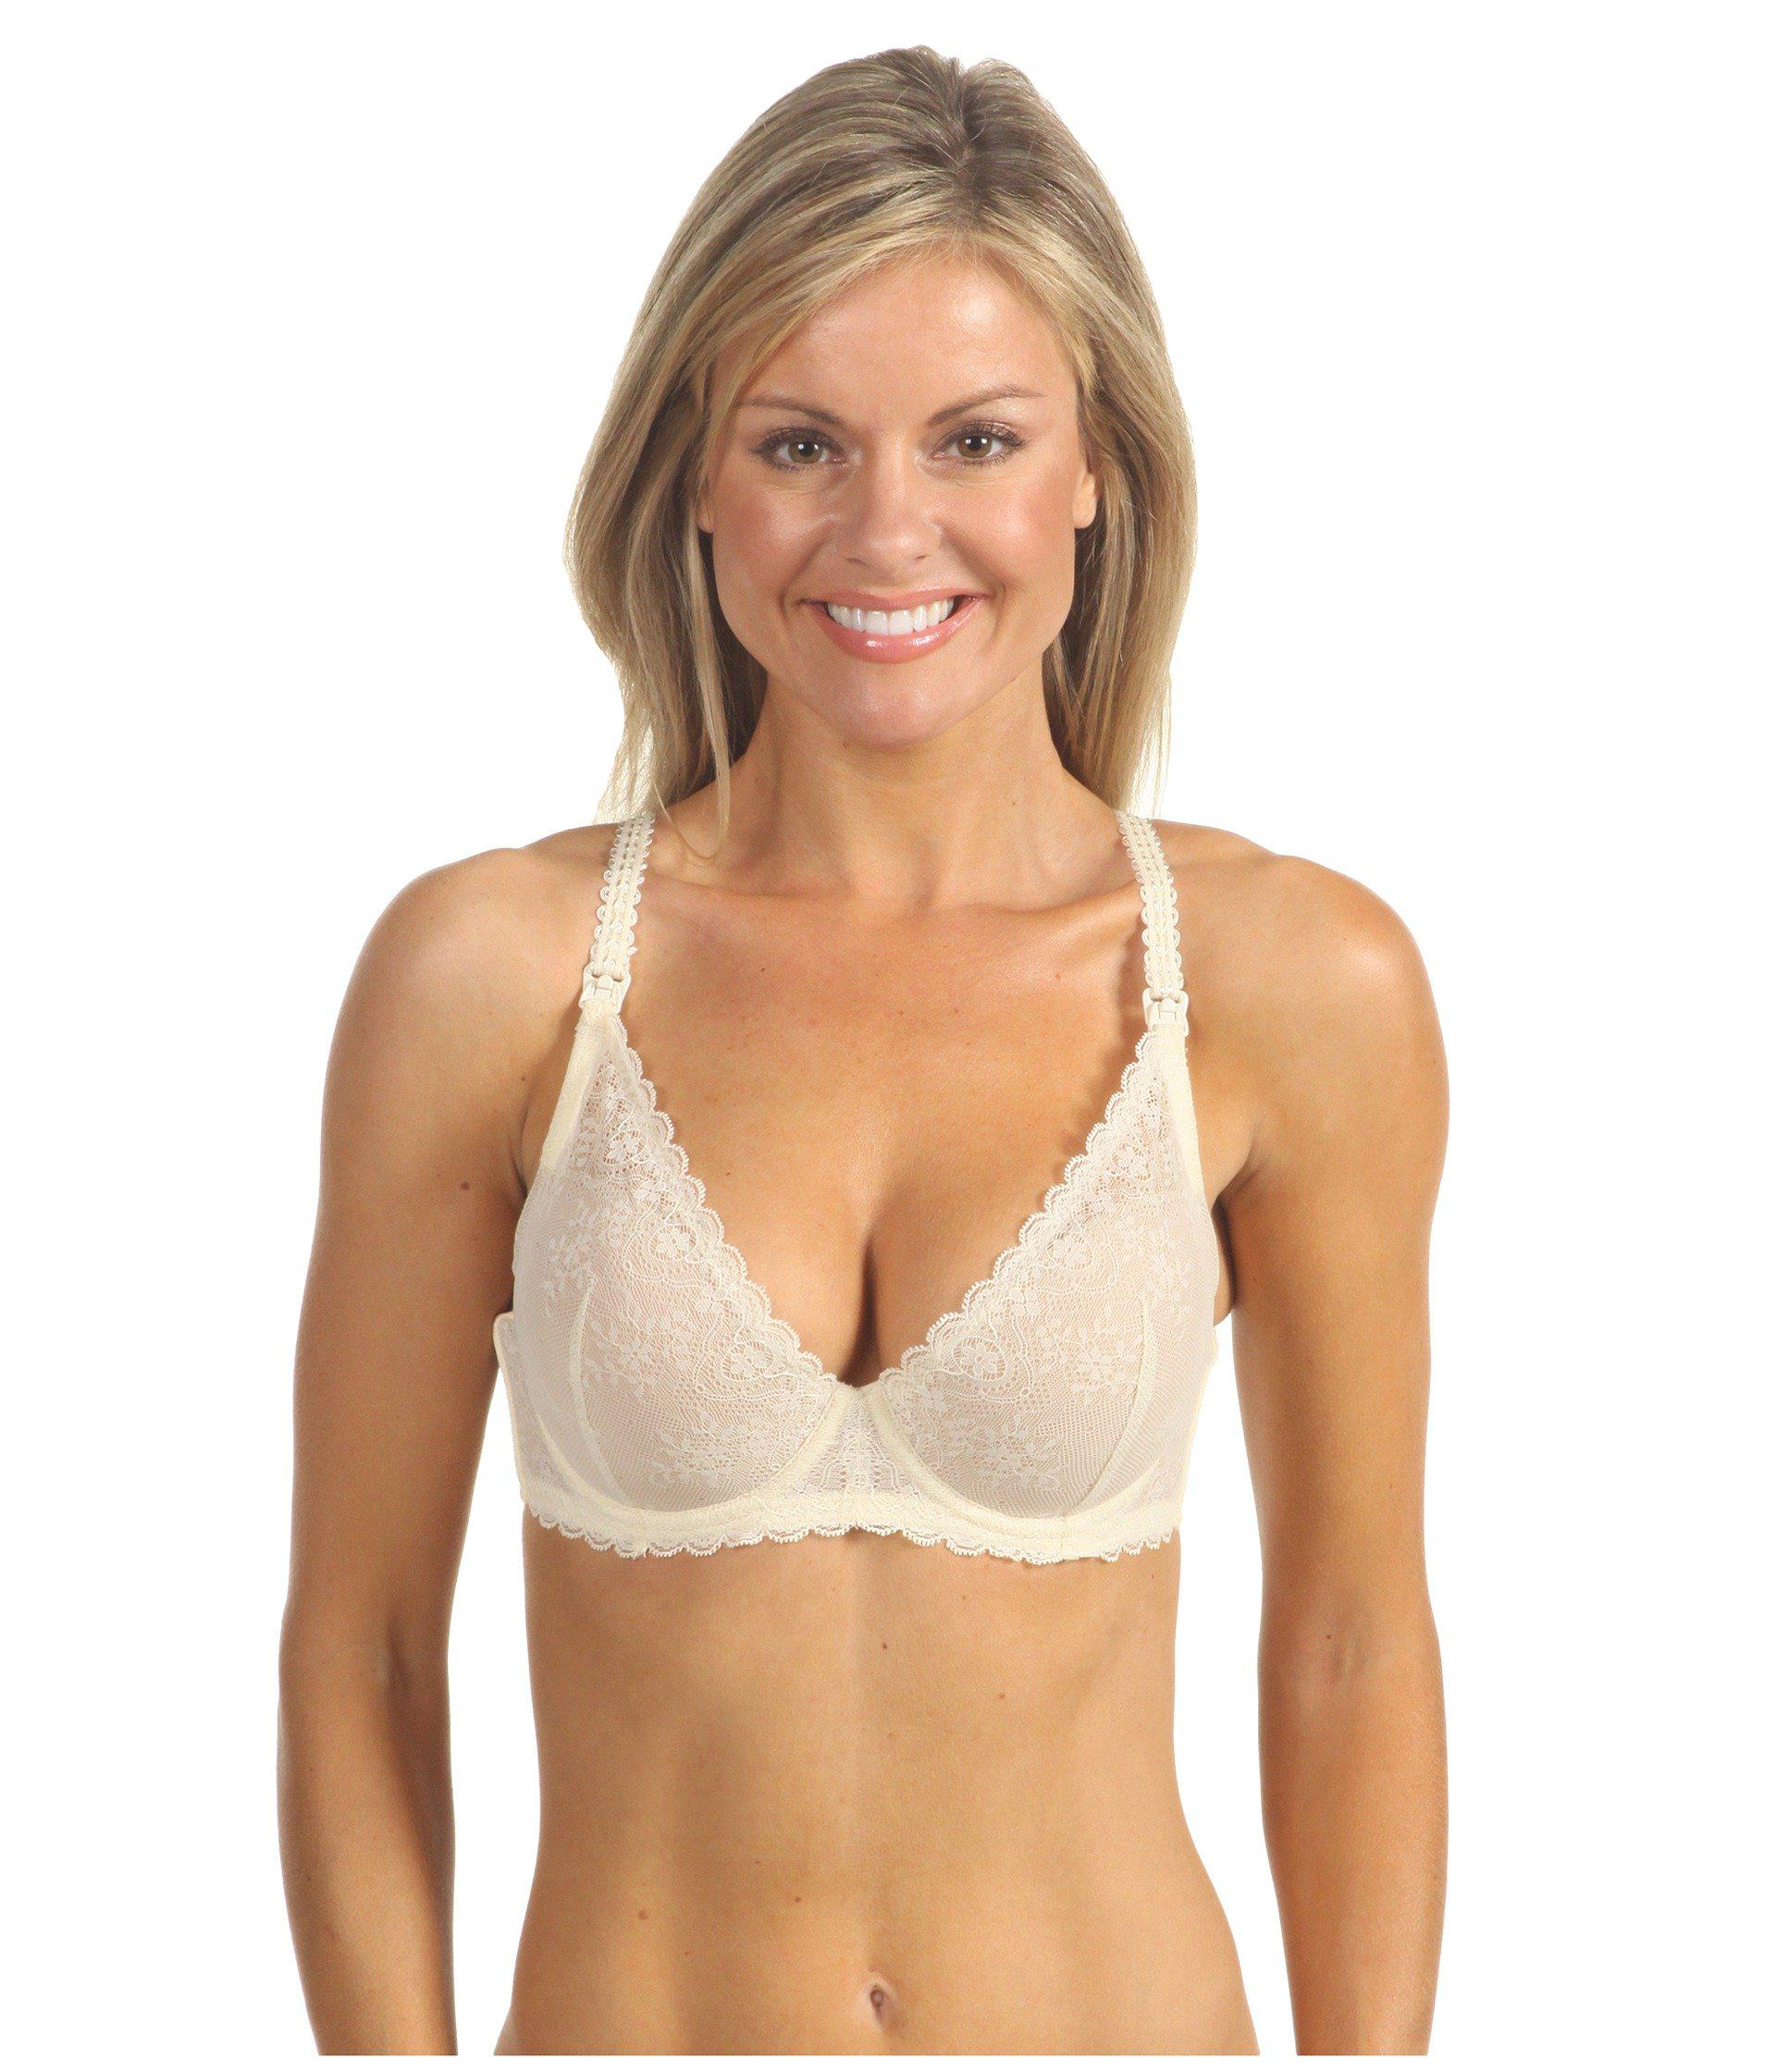 4a61b2d315 Lyst - Le Mystere Sexy Mama Underwire Nursing Bra 163 in Natural